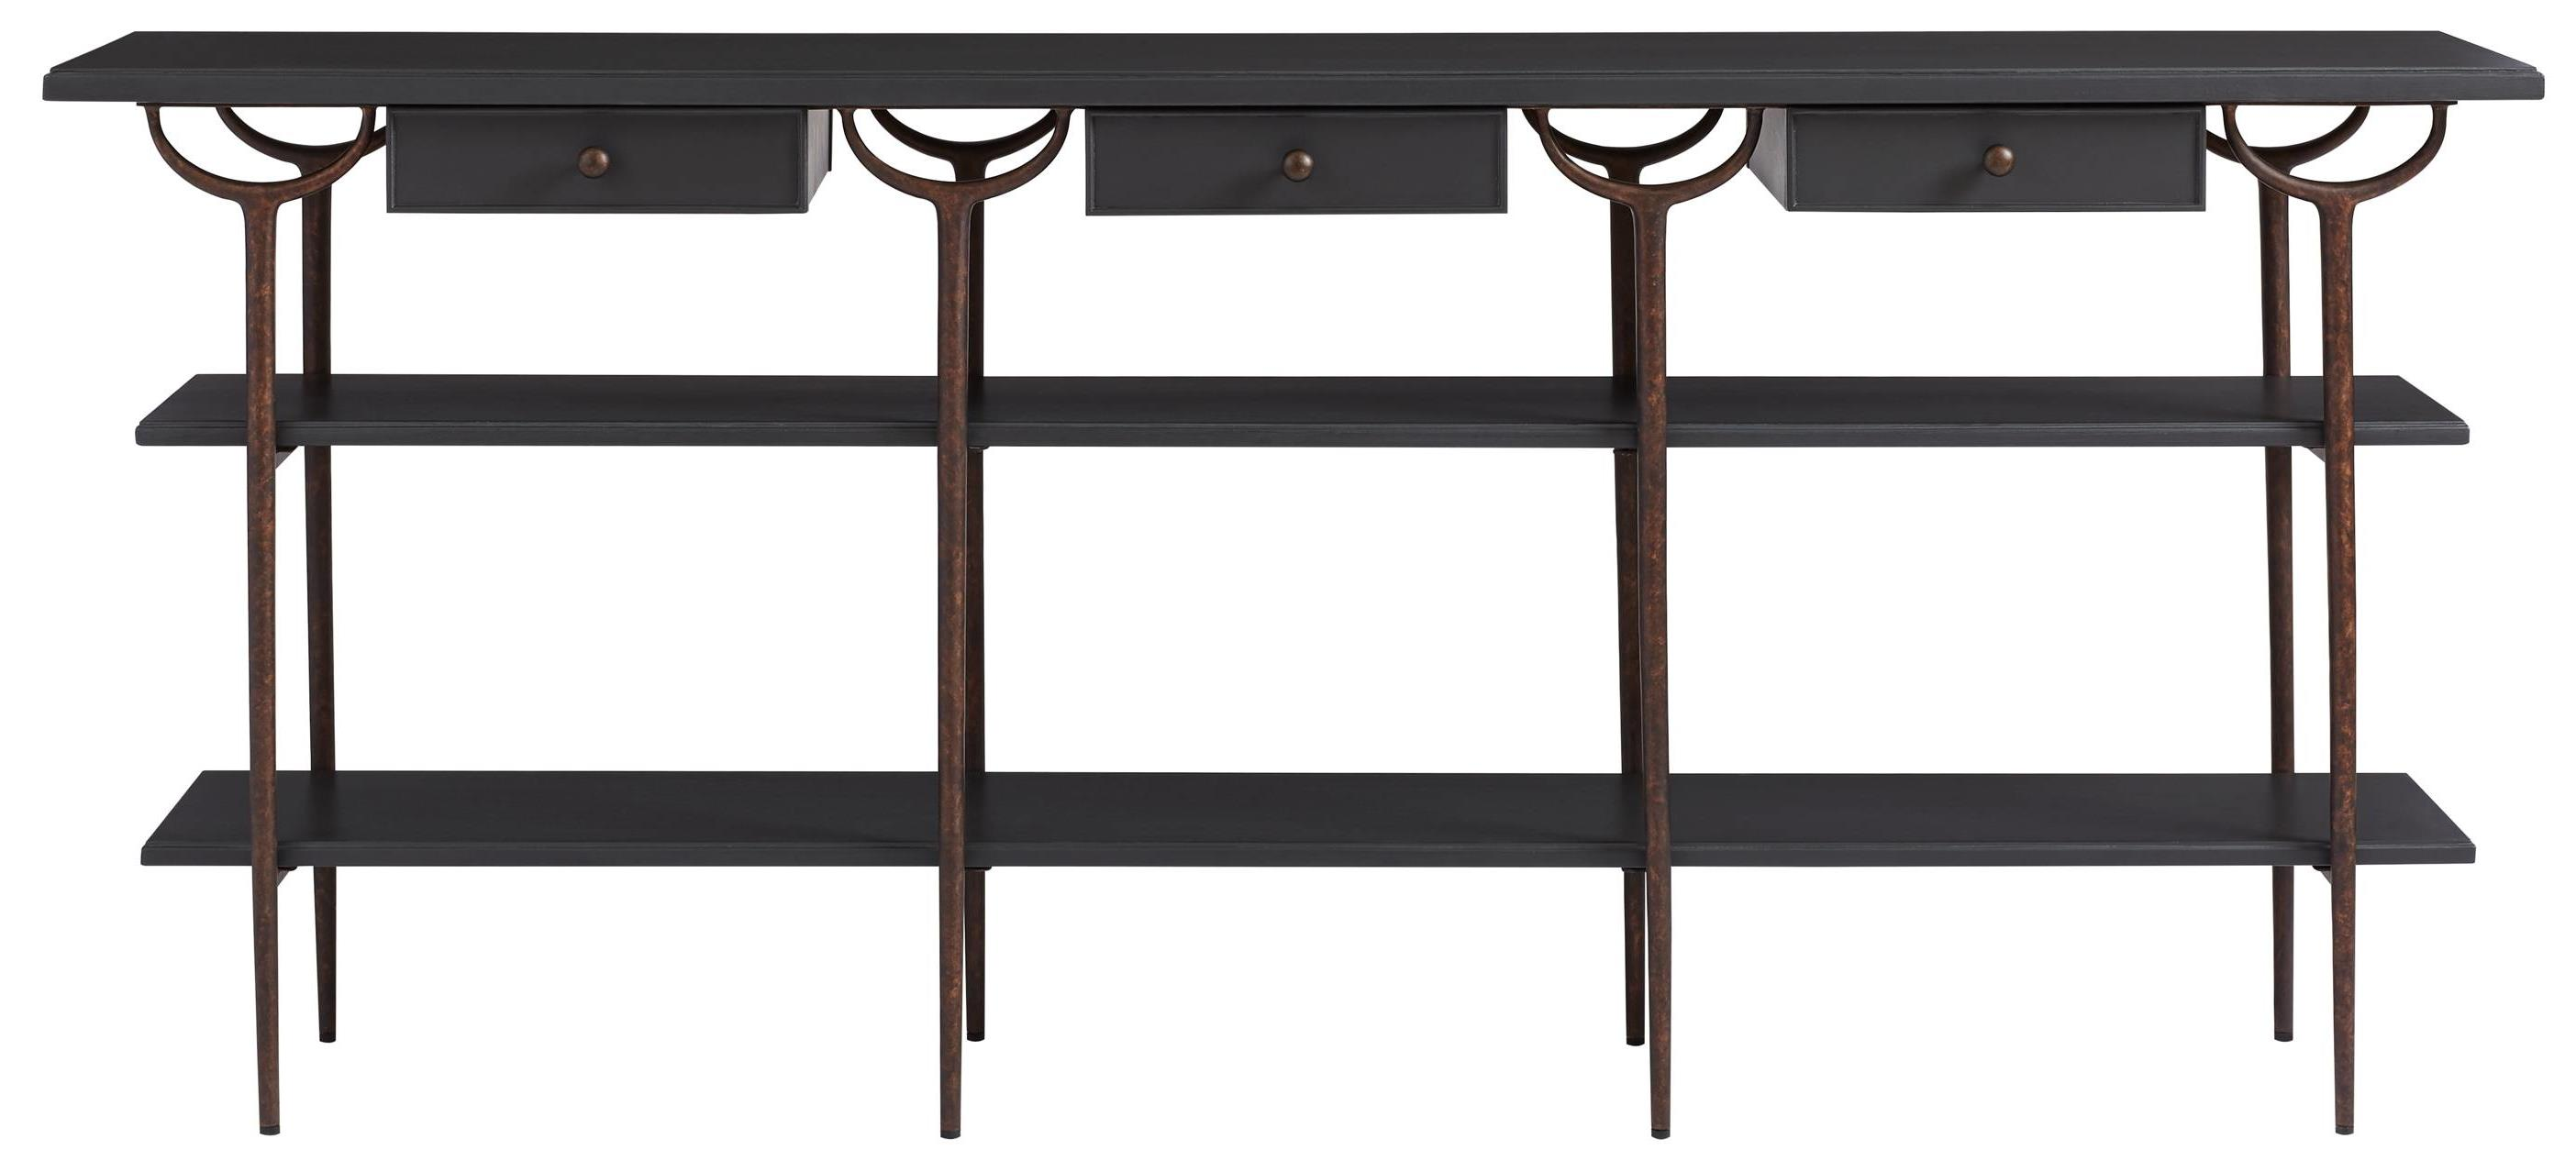 Stanley Furniture Villa Couture Asti Console Table - Item Number: 510-85-05